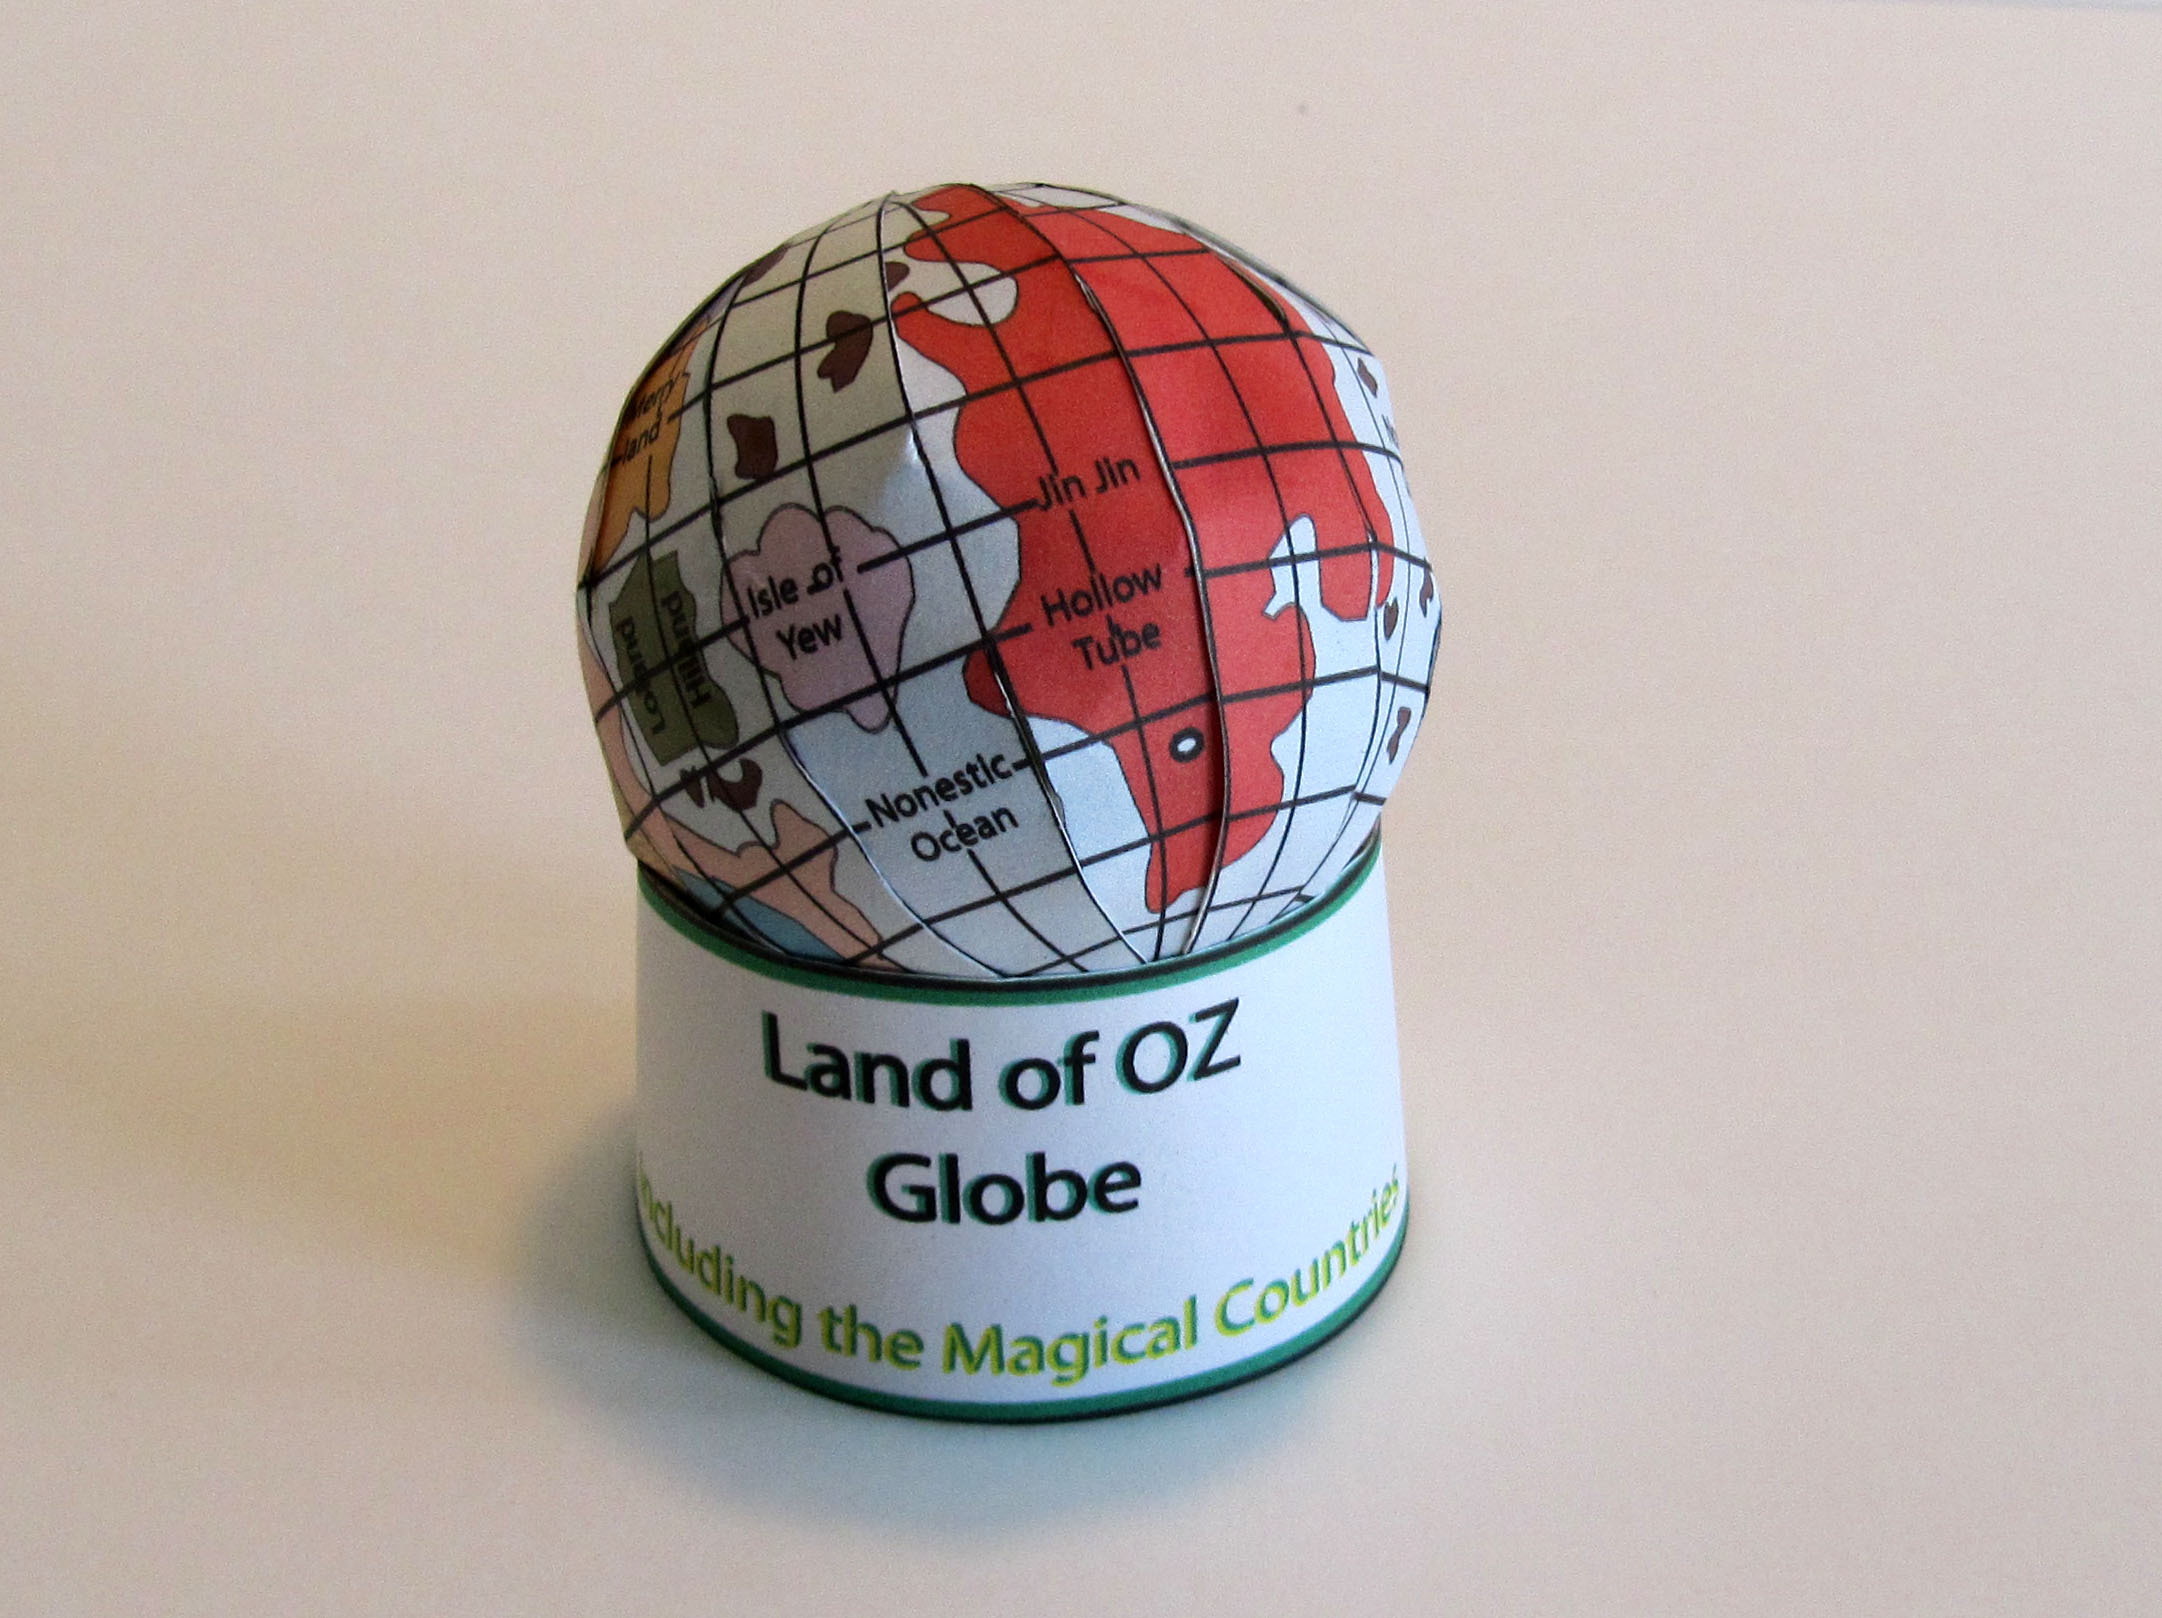 picture of Land of Oz model